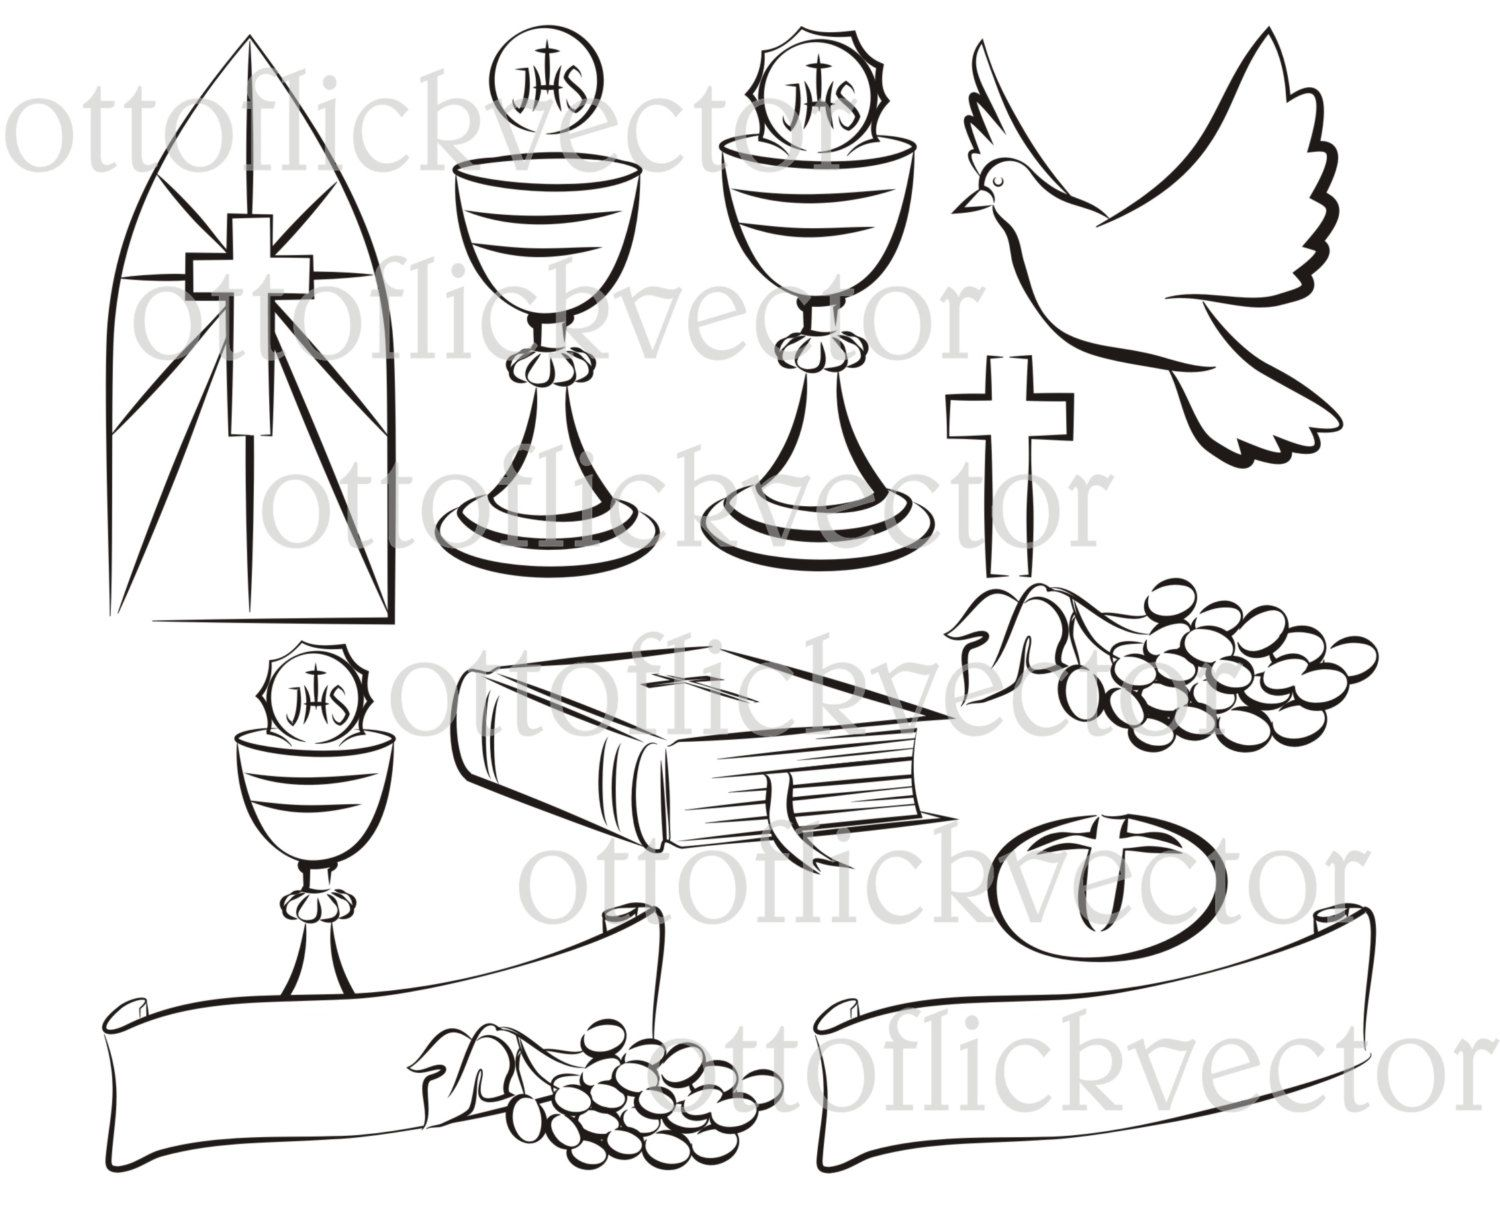 hight resolution of vector clipart for printing designing your own project and more you will receive zip file